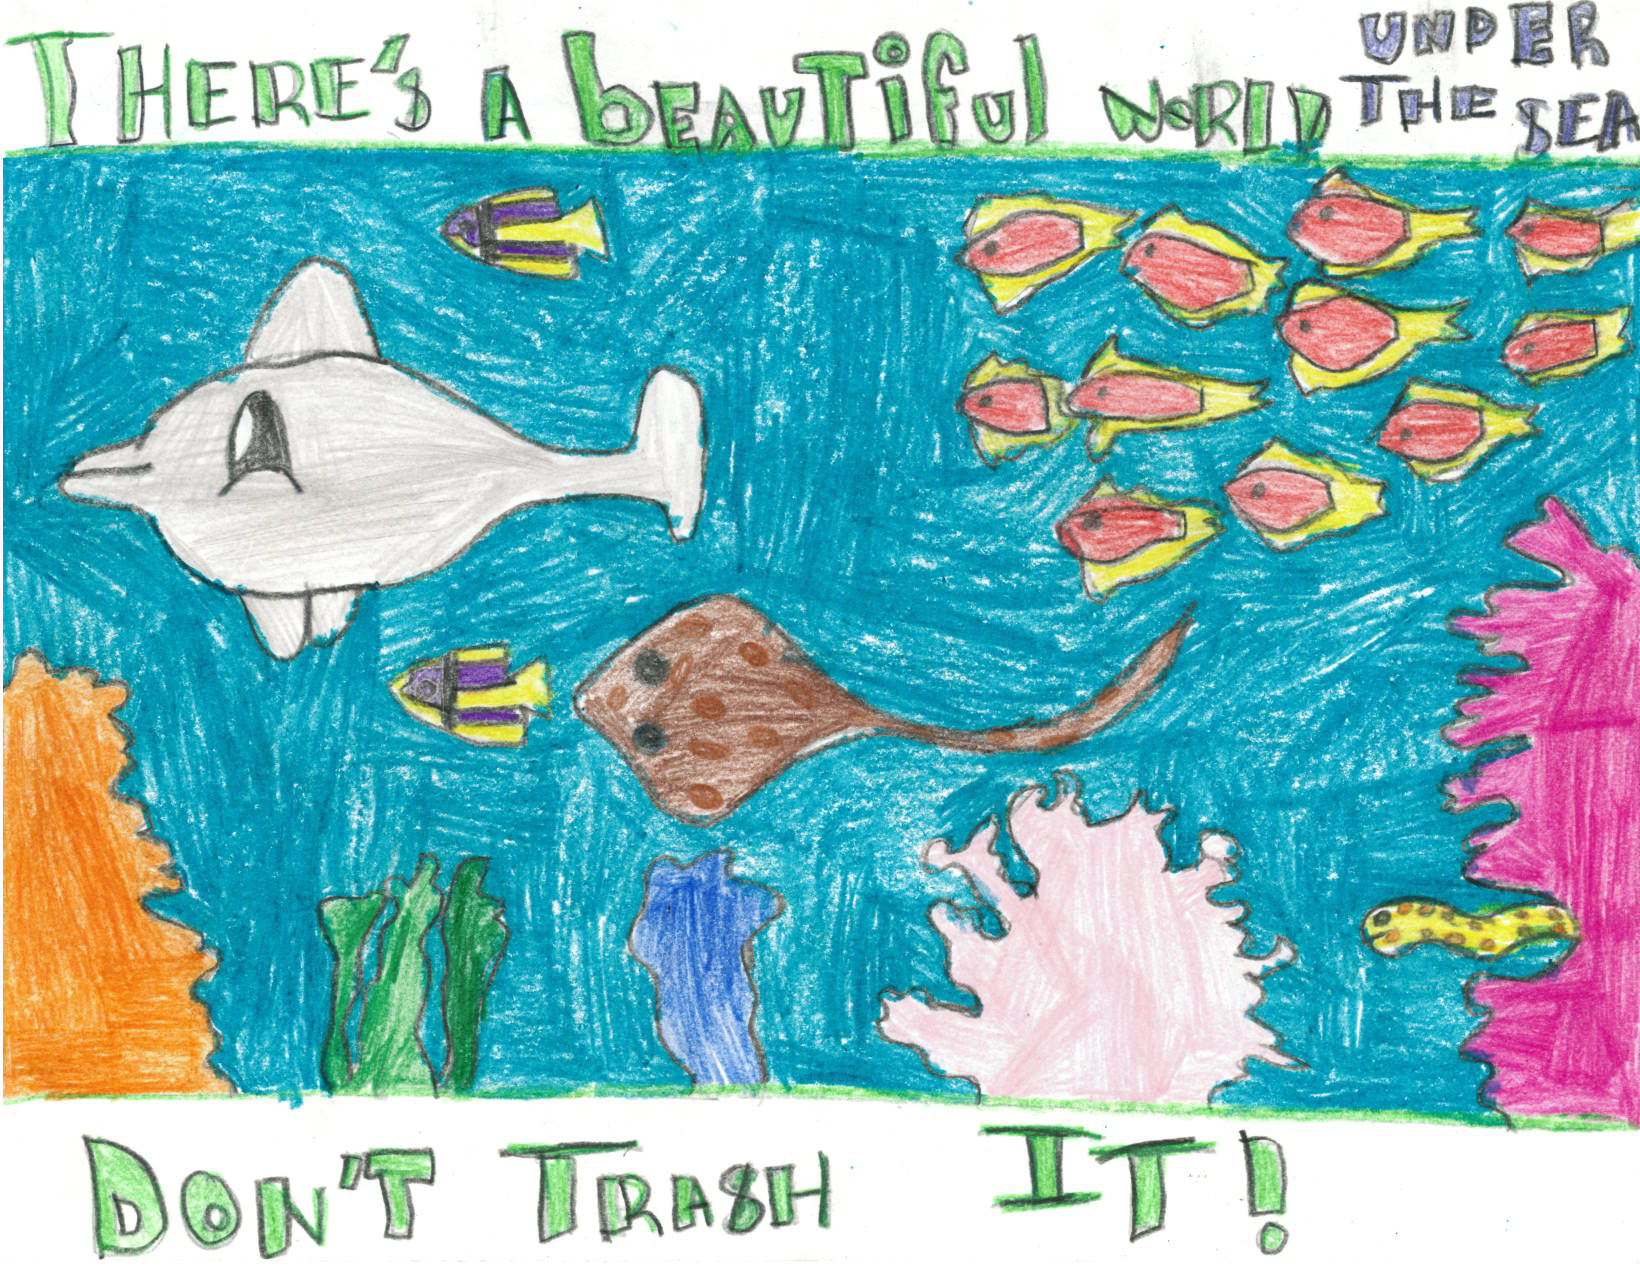 Children's drawing of an underwater landscape with sea creatures, calling for keeping the sea clean because it is beautiful.